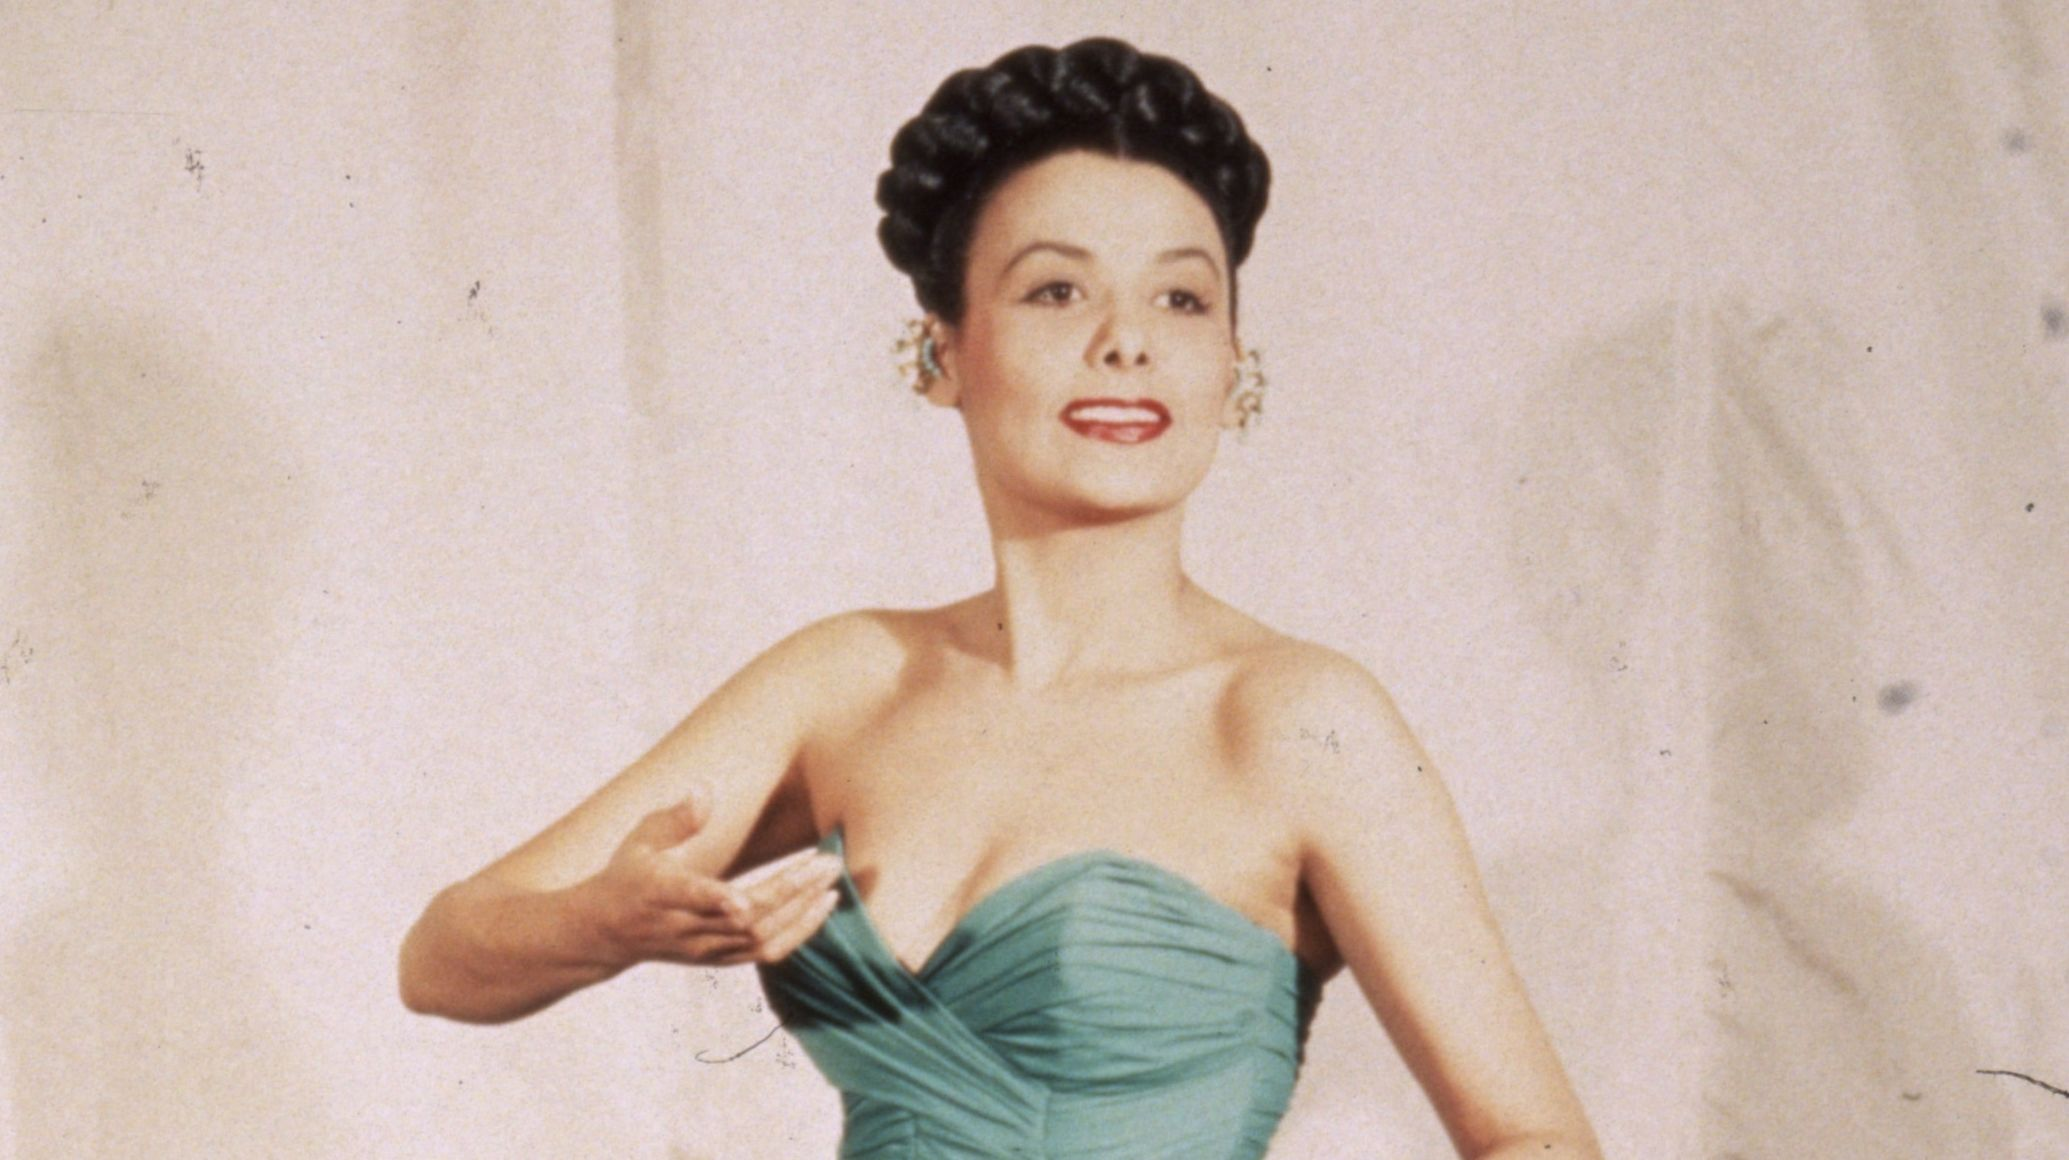 10 Amazing Facts About Lena Horne